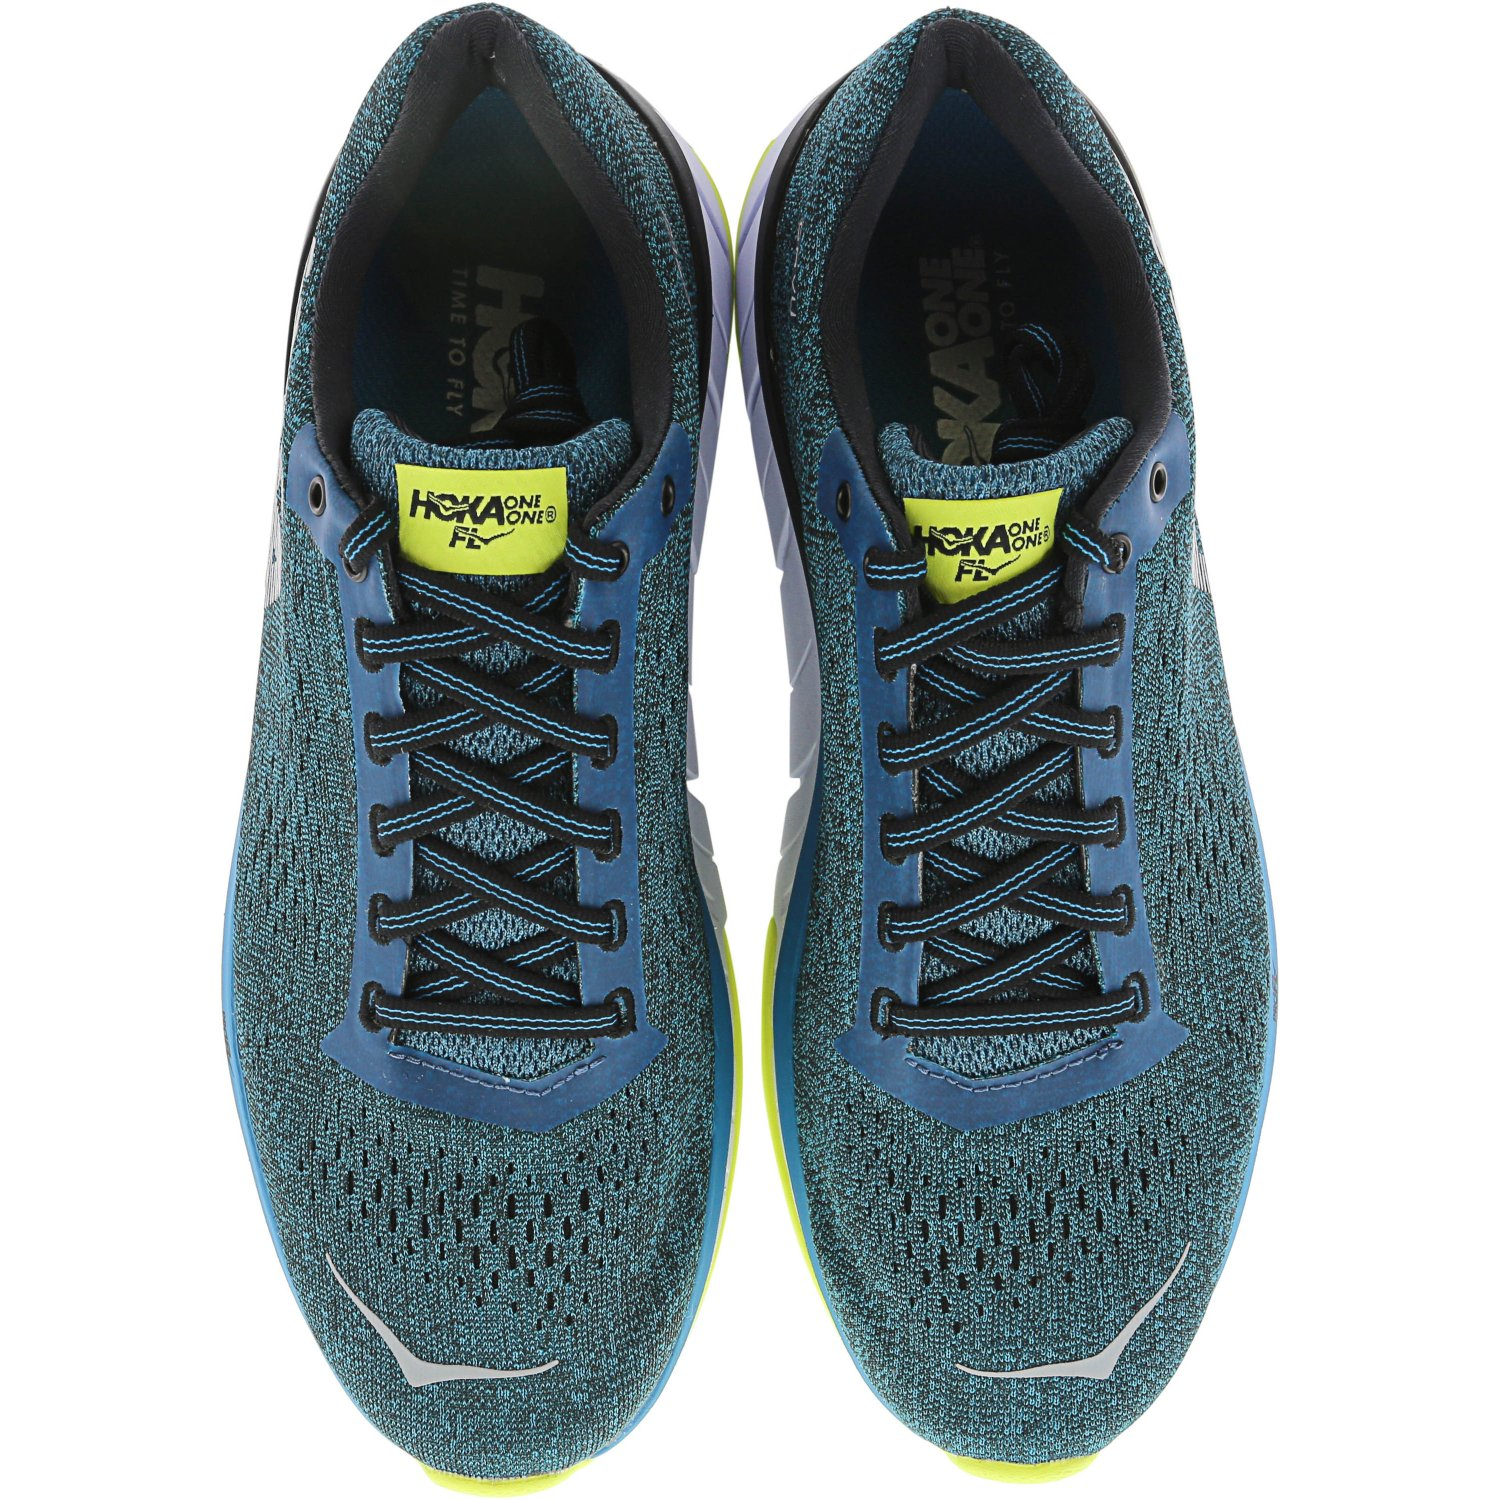 Hoka-One-Men-039-s-Cavu-Ankle-High-Mesh-Running-Shoe thumbnail 8